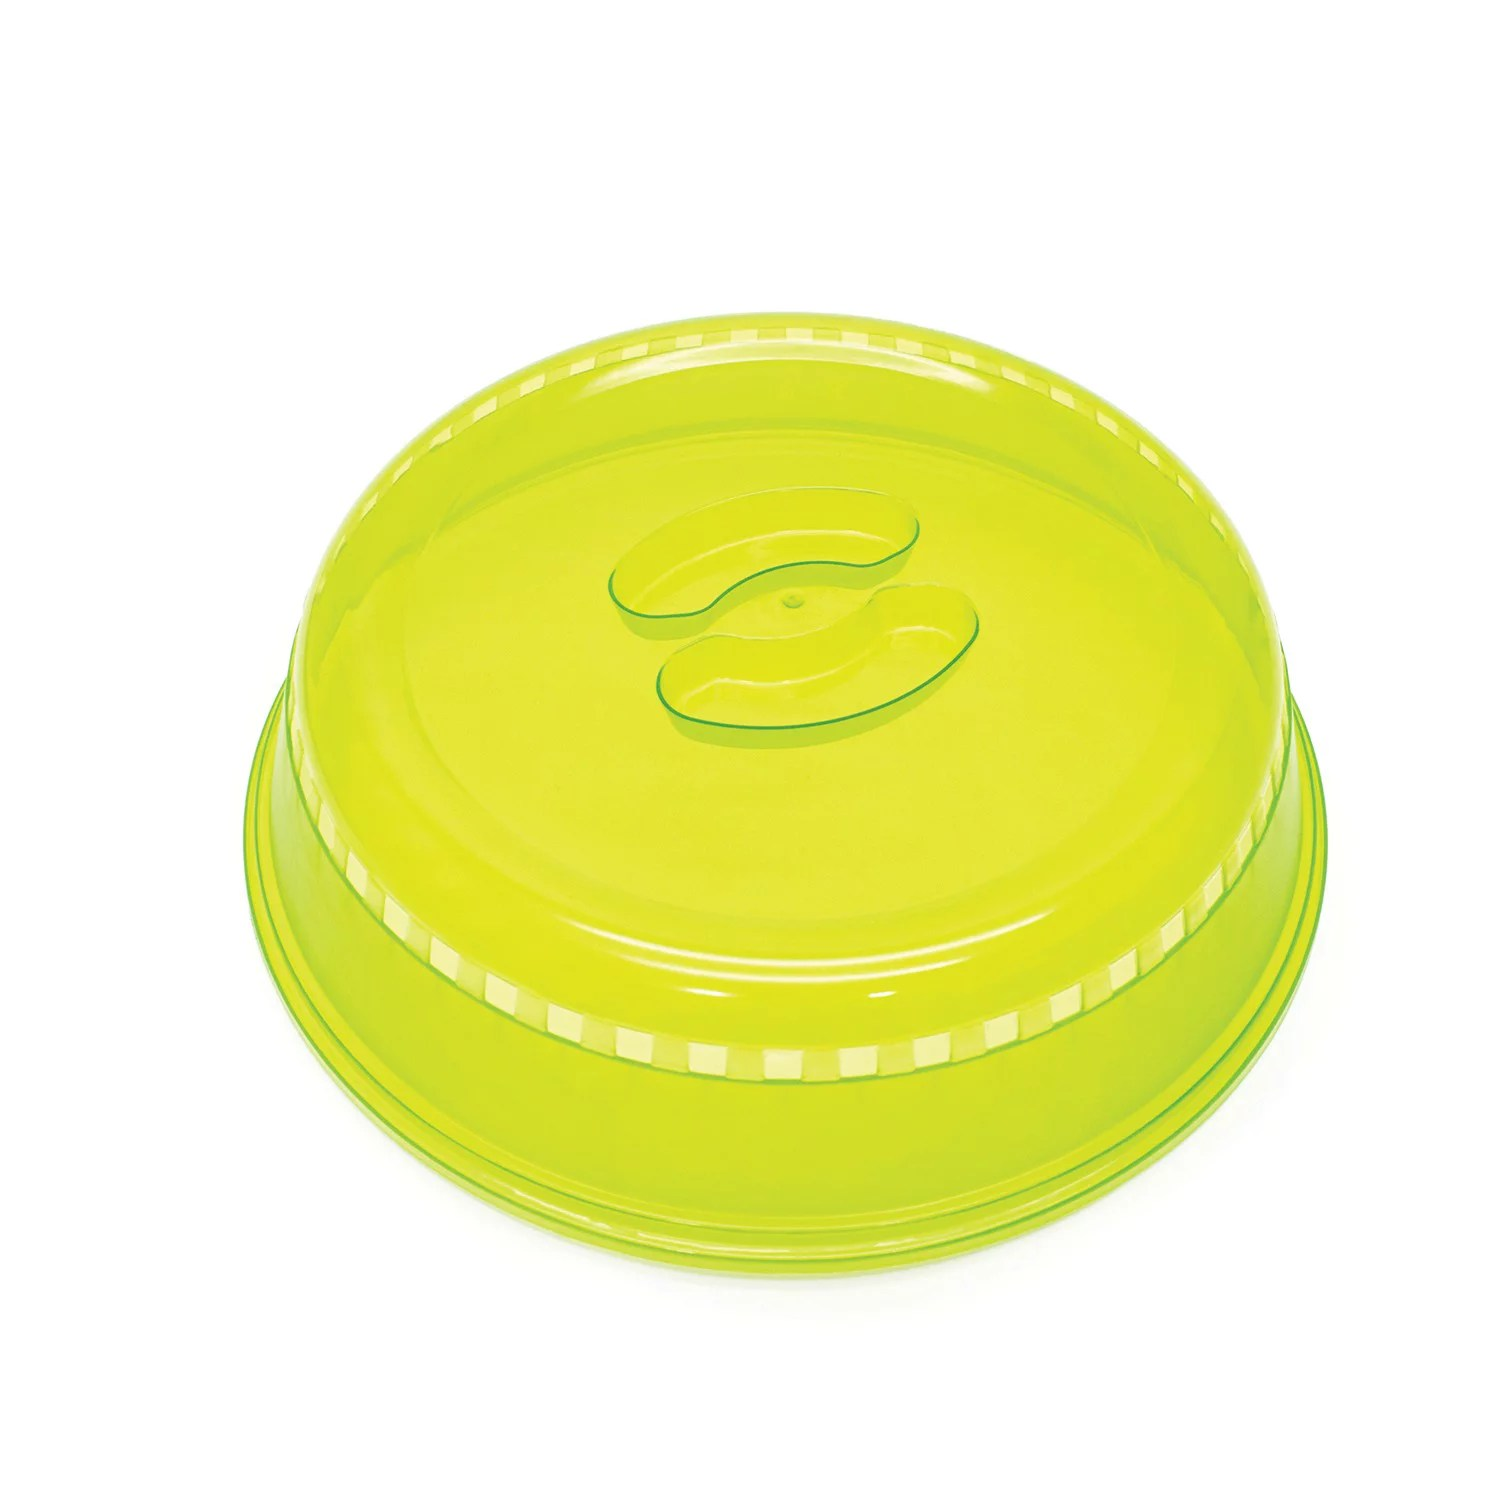 starfrit 80499 006 0000 microwave food cover